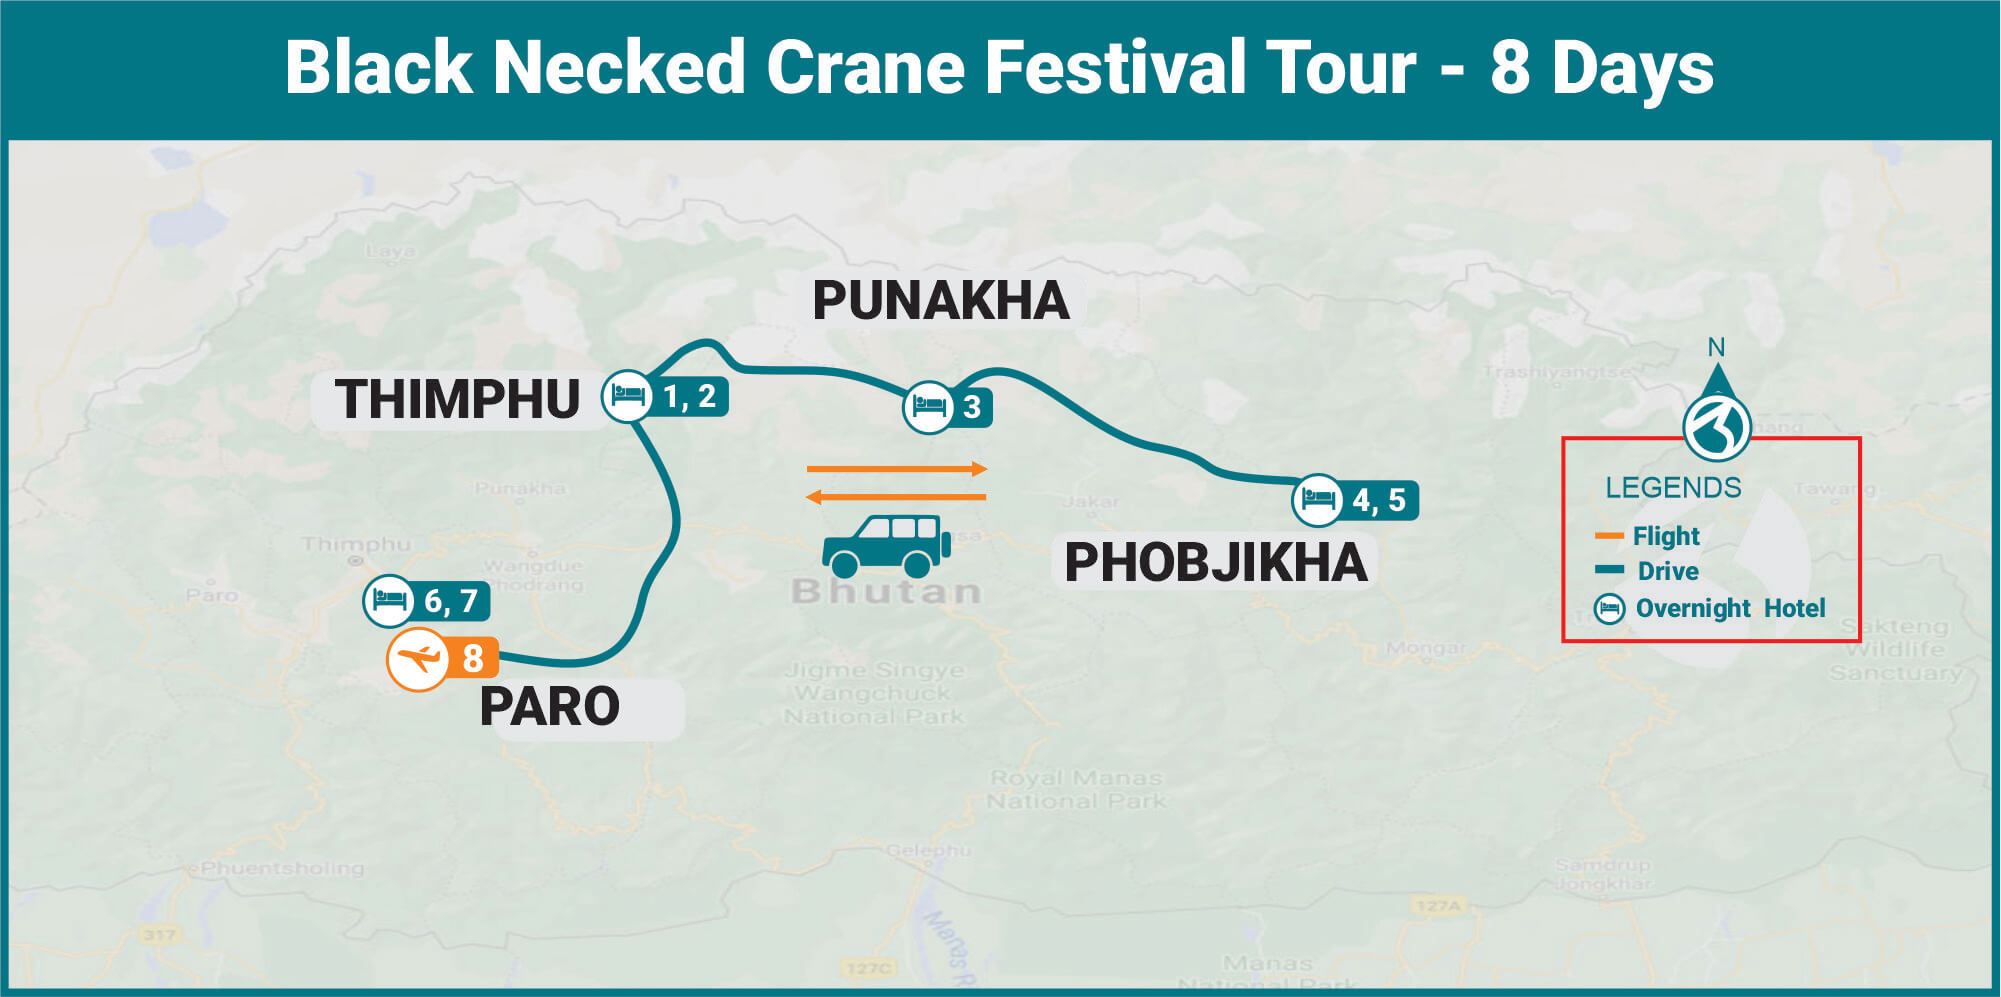 Black Necked Crane Festival Tour Map